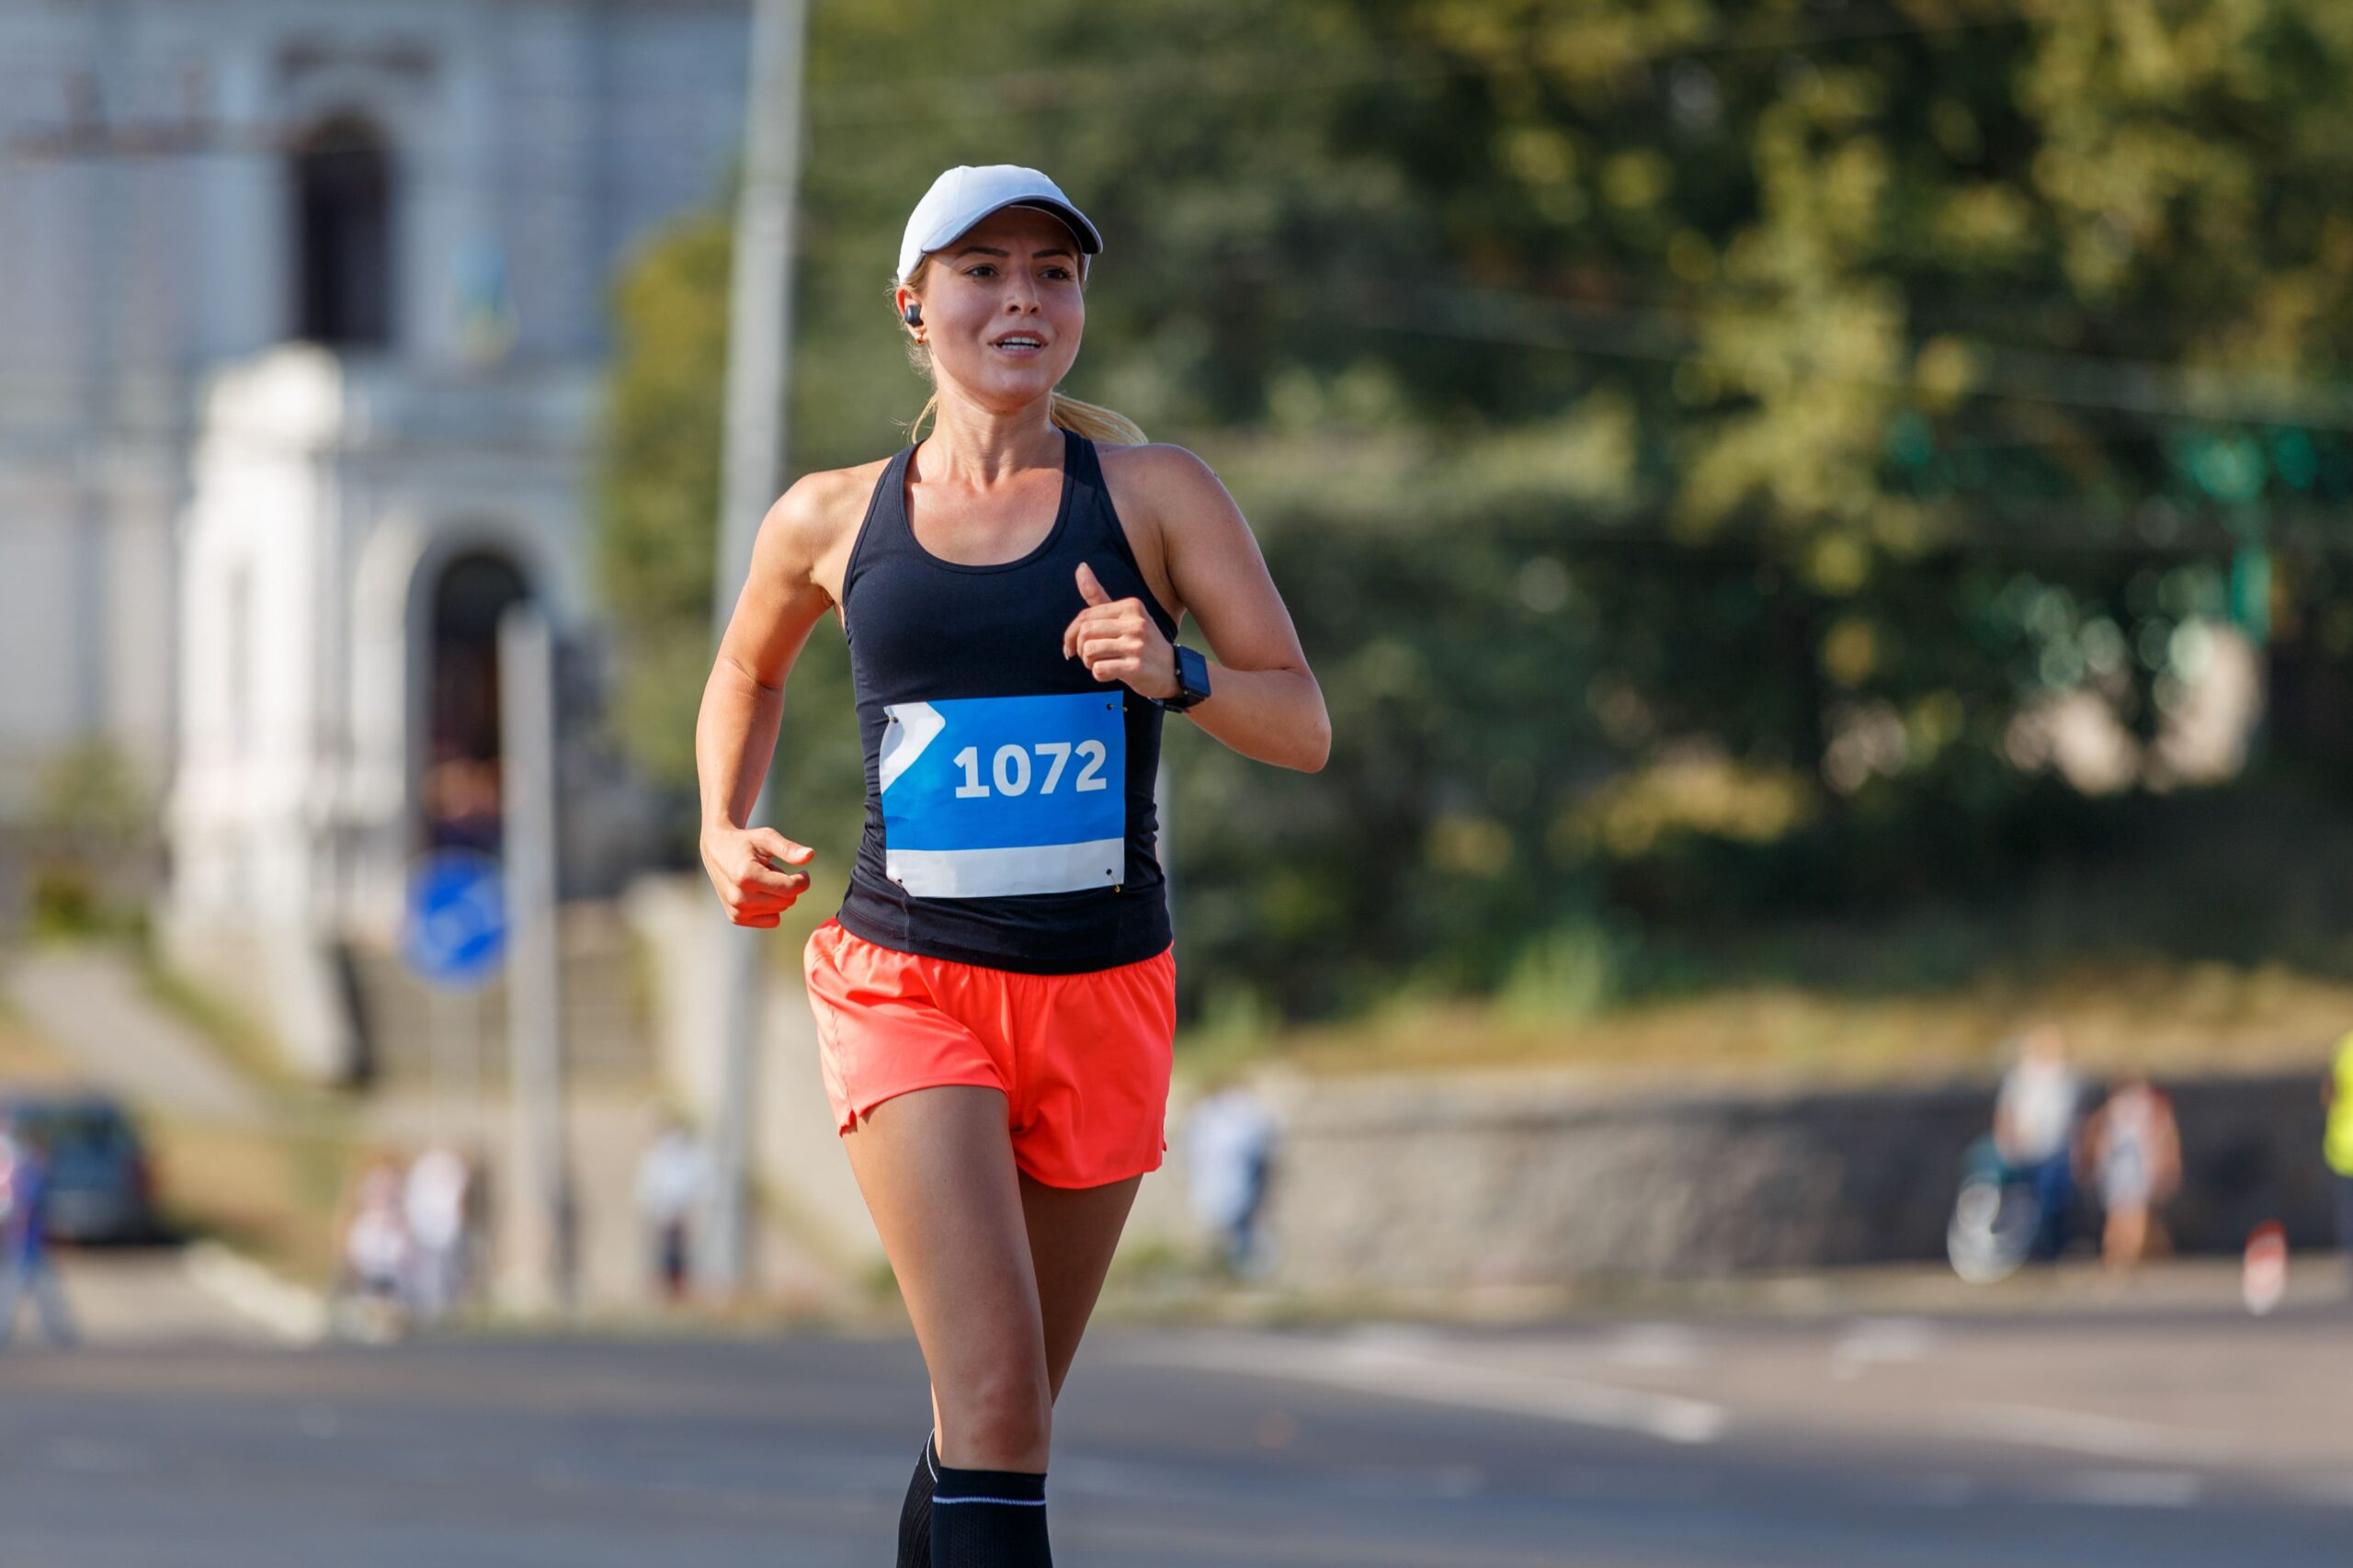 women running in marathon